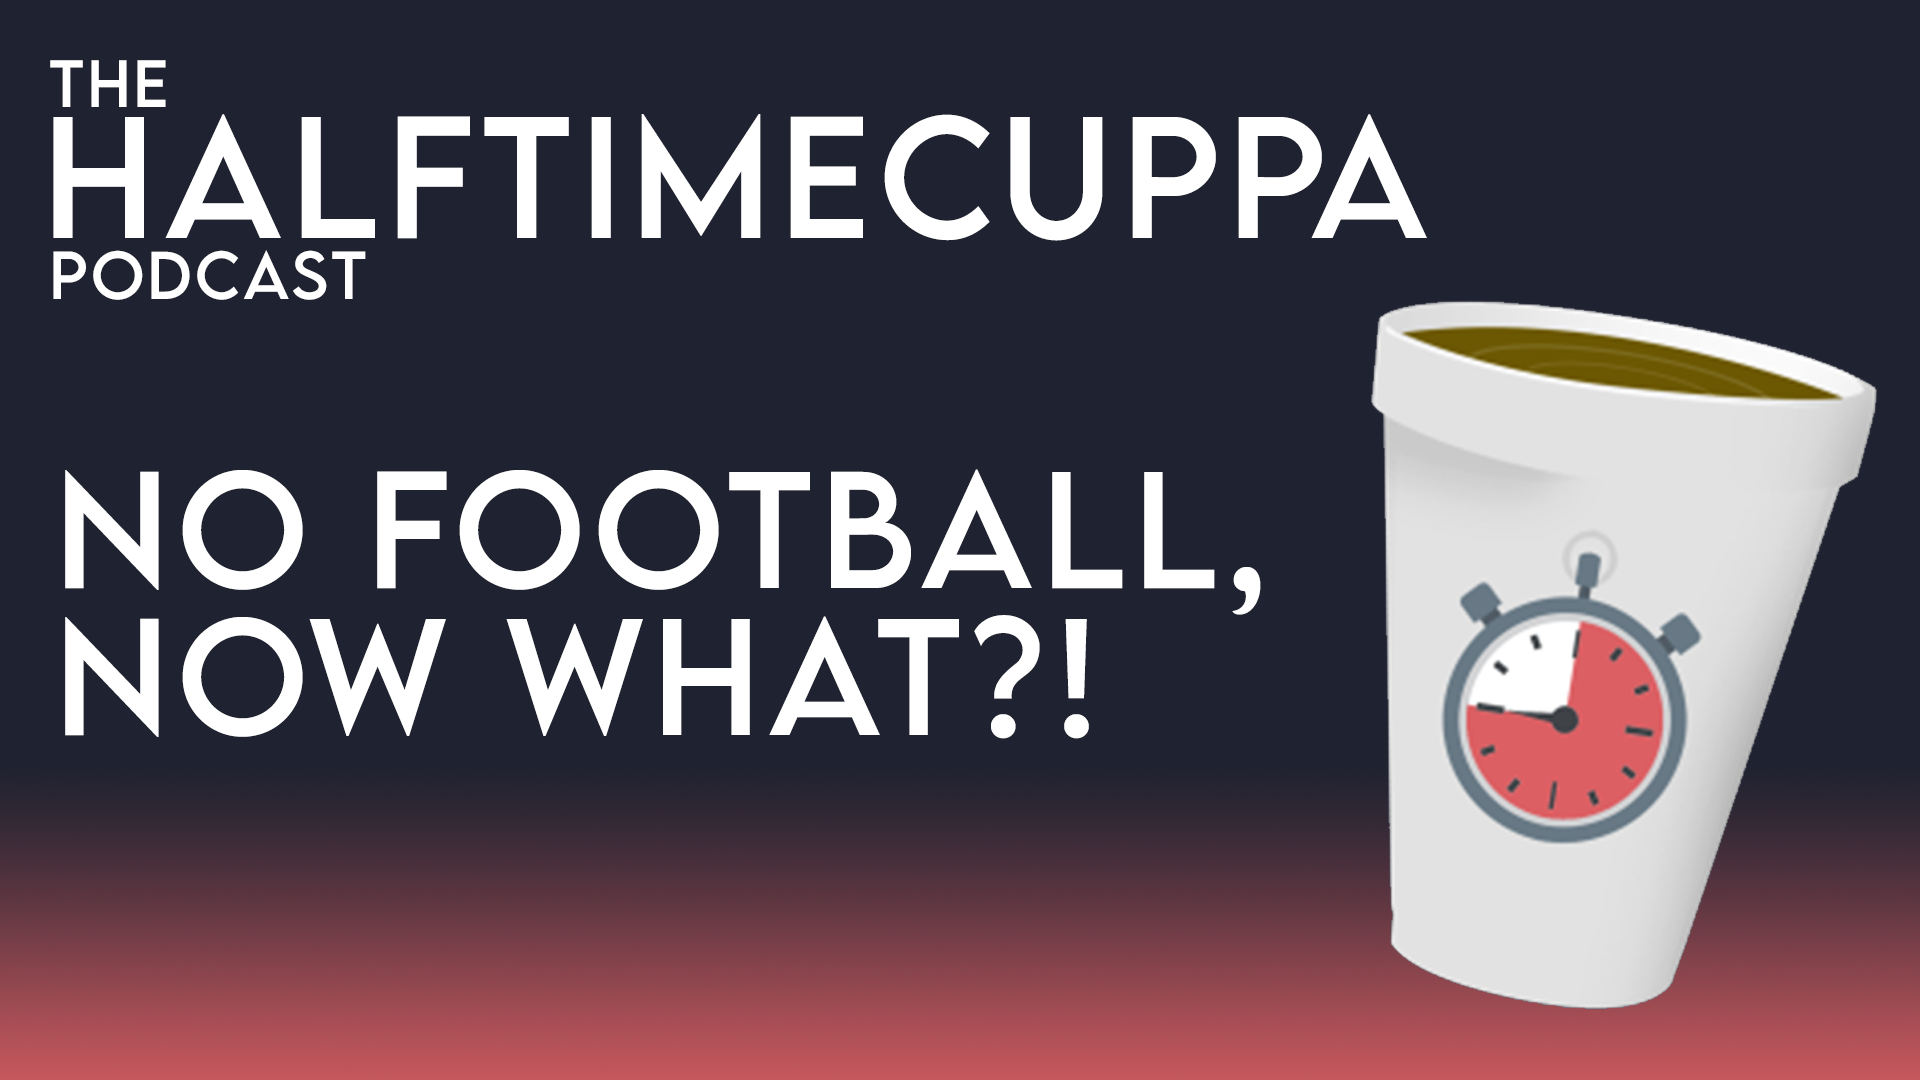 The Half Time Podcast – #39 – No Football, now what?!